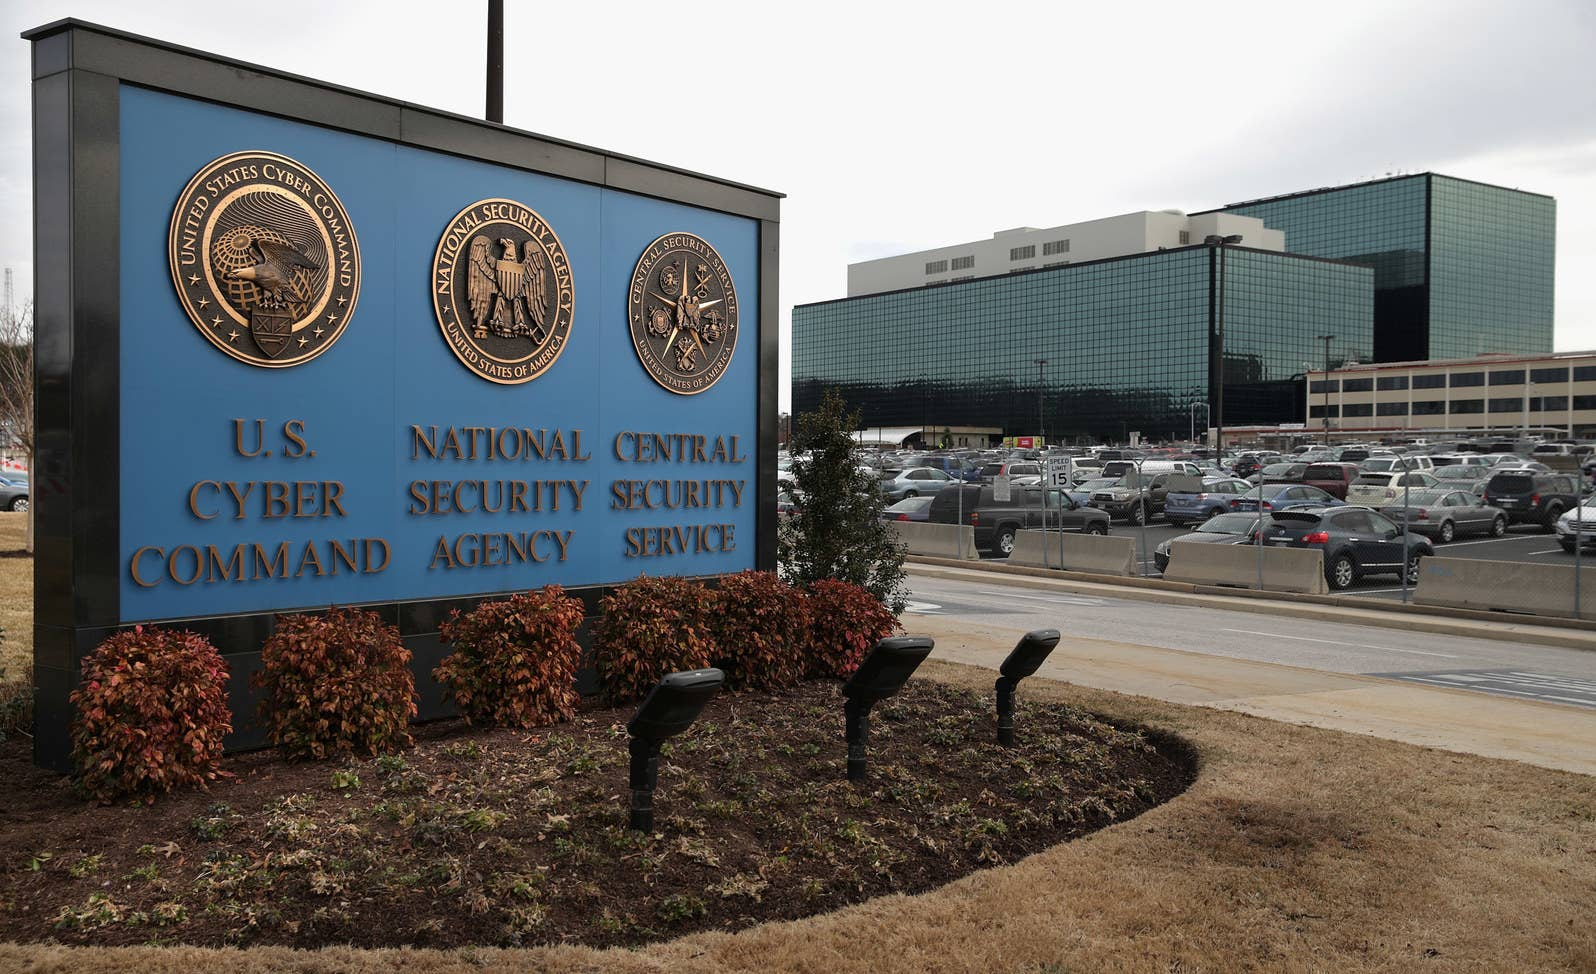 The seals of the US Cyber Command, the National Security Agency, and the Central Security Service at the campus the three organizations share in Fort Meade, Maryland.